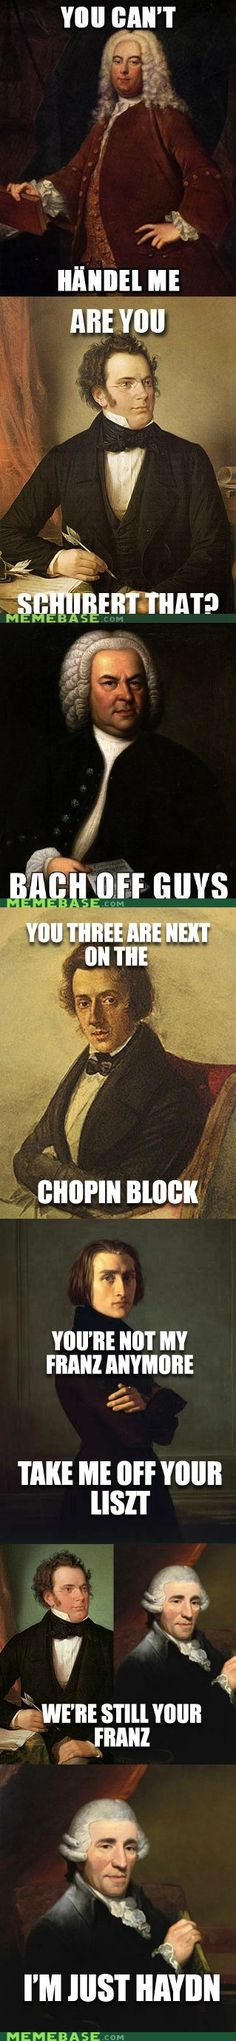 My Franz are nothing but treble - yay music geek humor